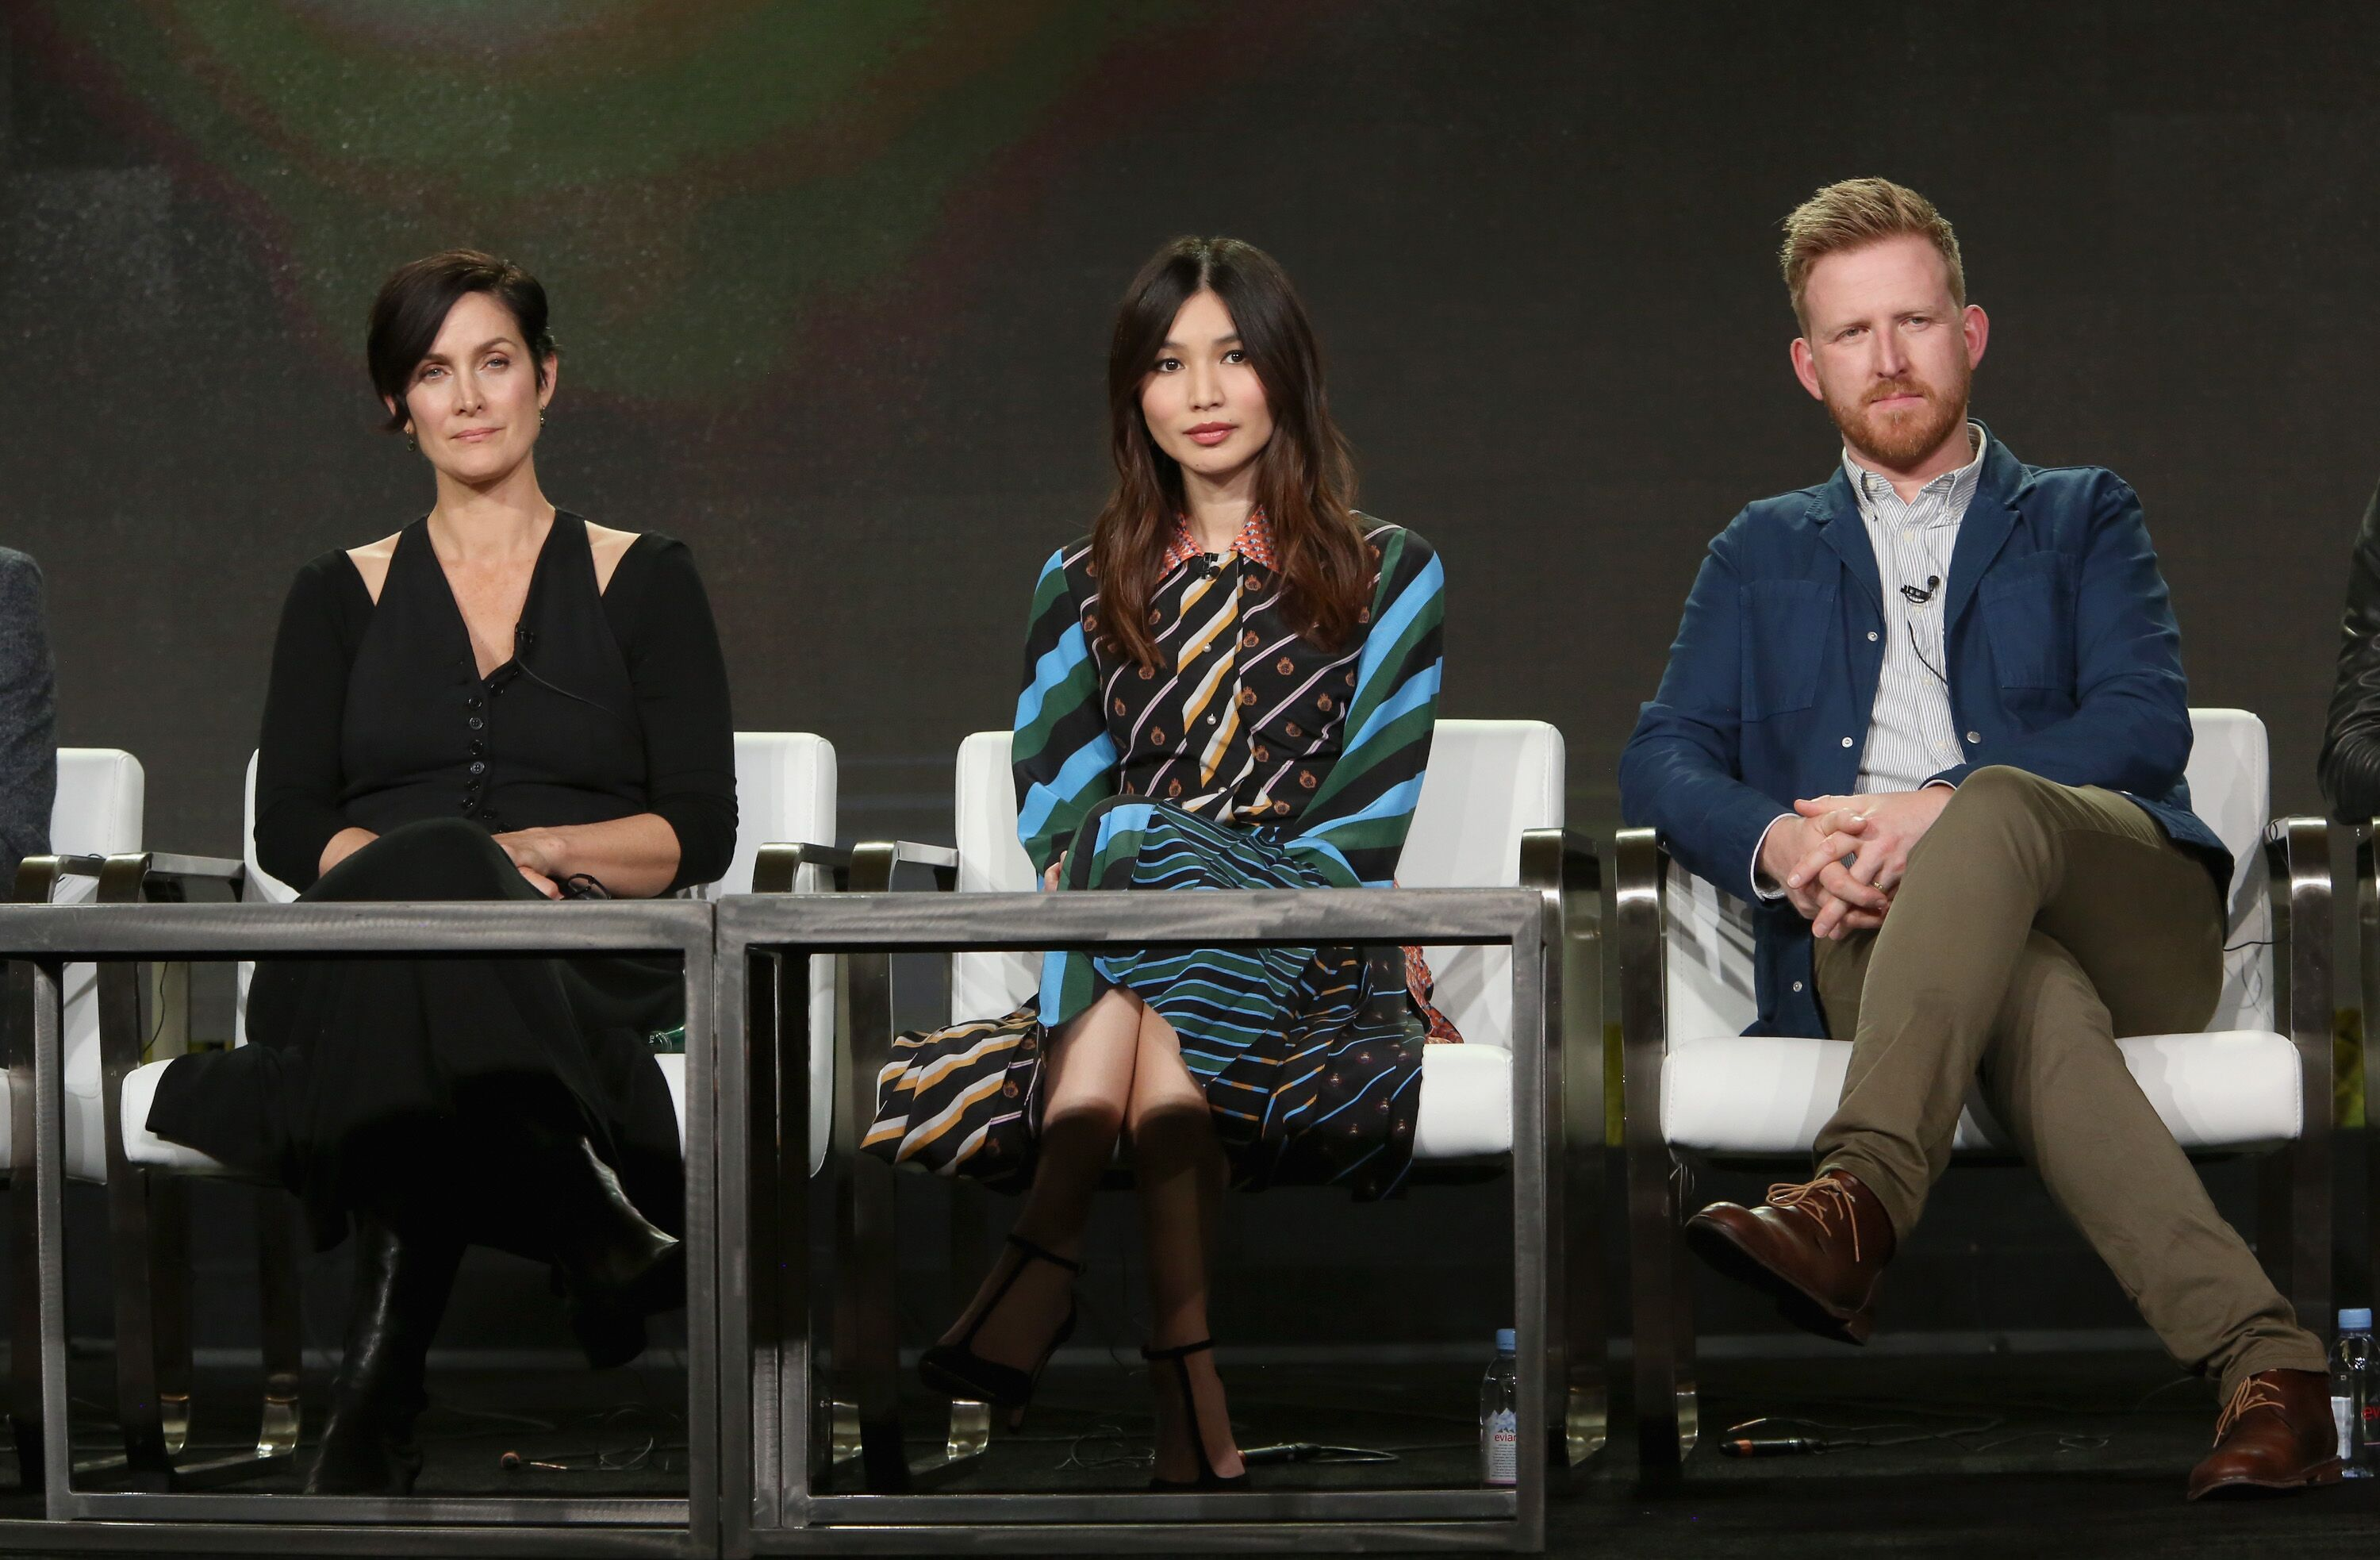 Looking for a new sci-fi thriller after Westworld? Give Humans a try